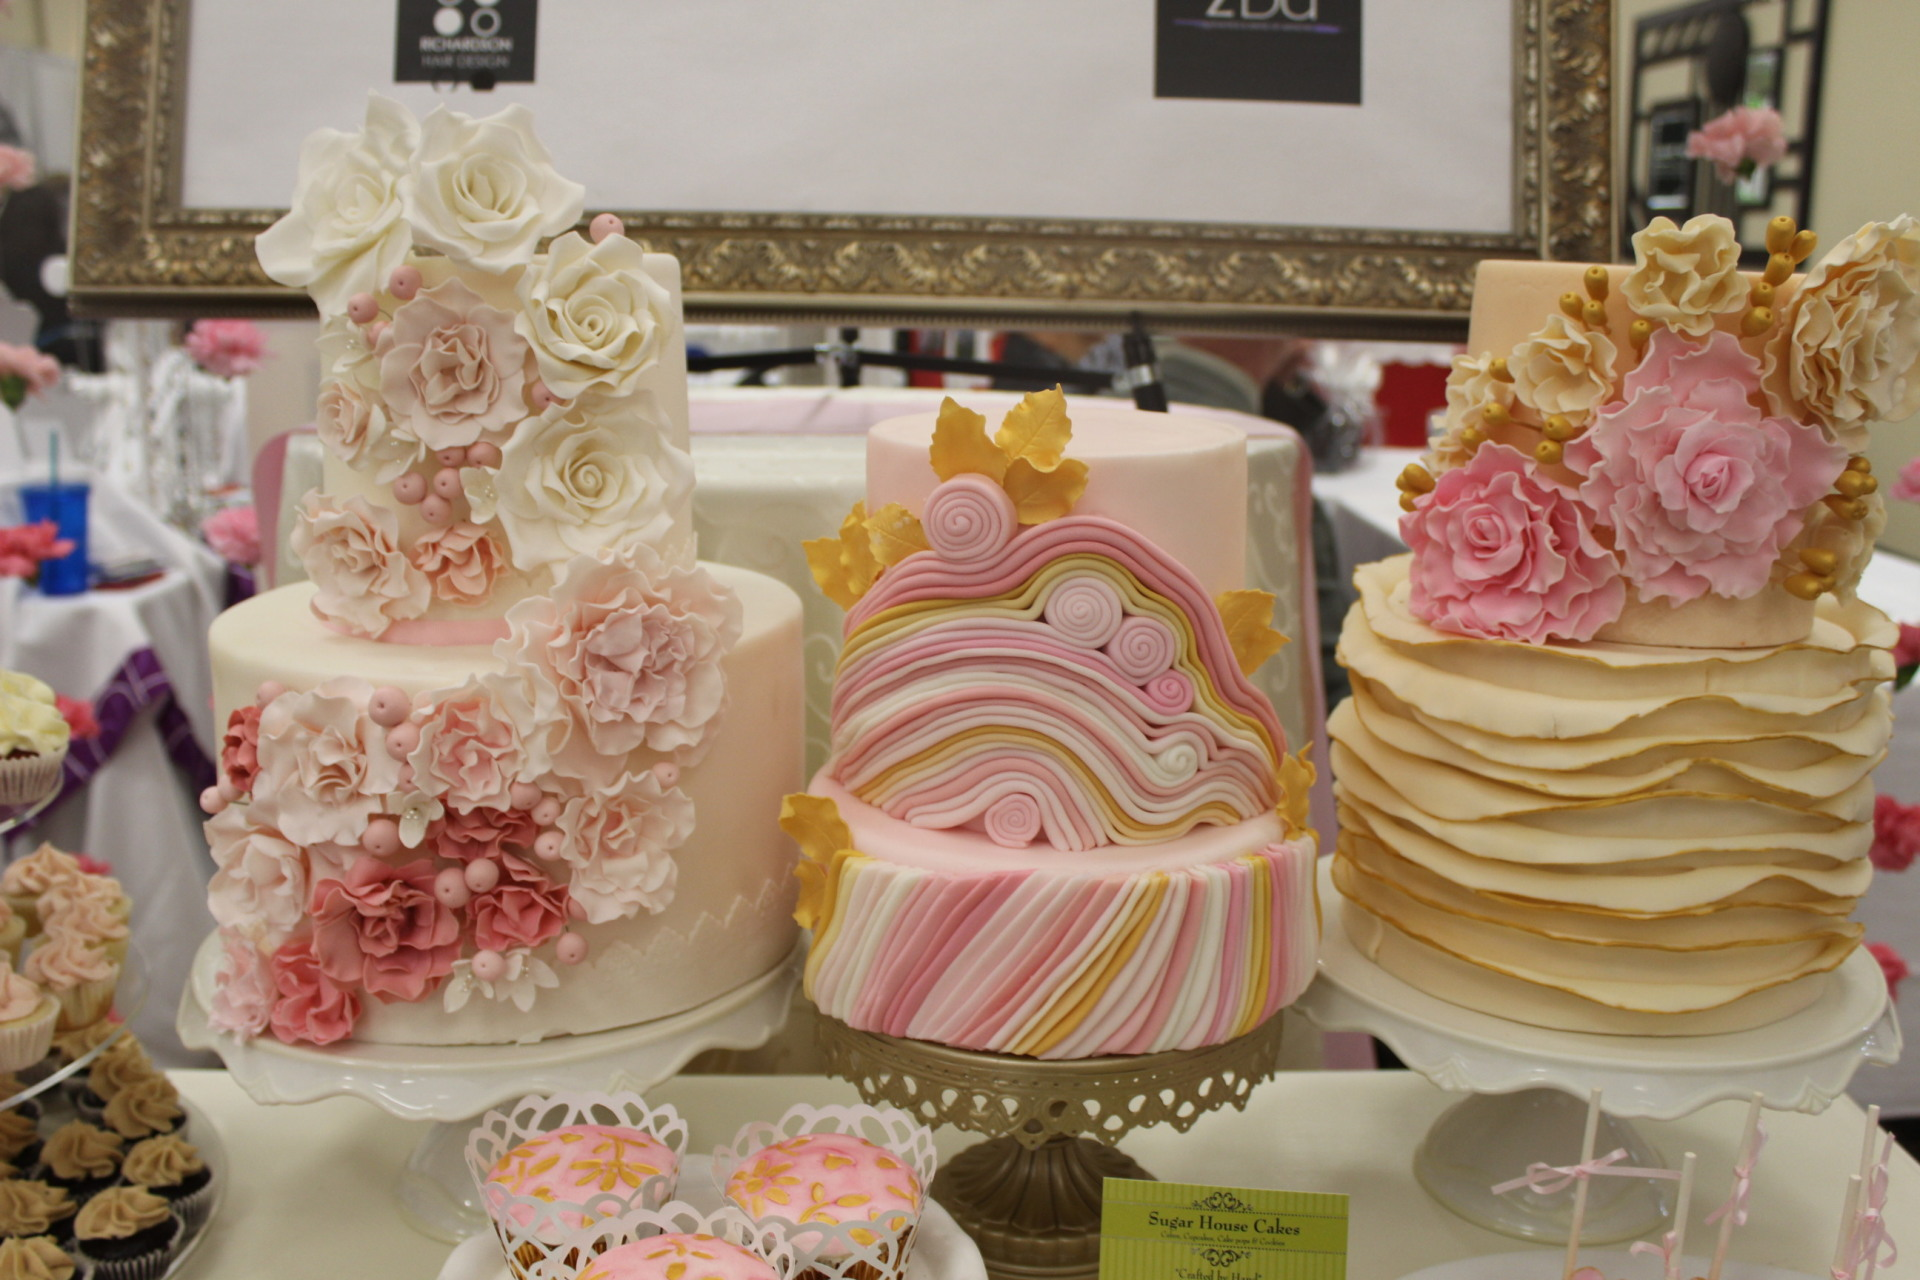 Wedding cakes pretty in pink